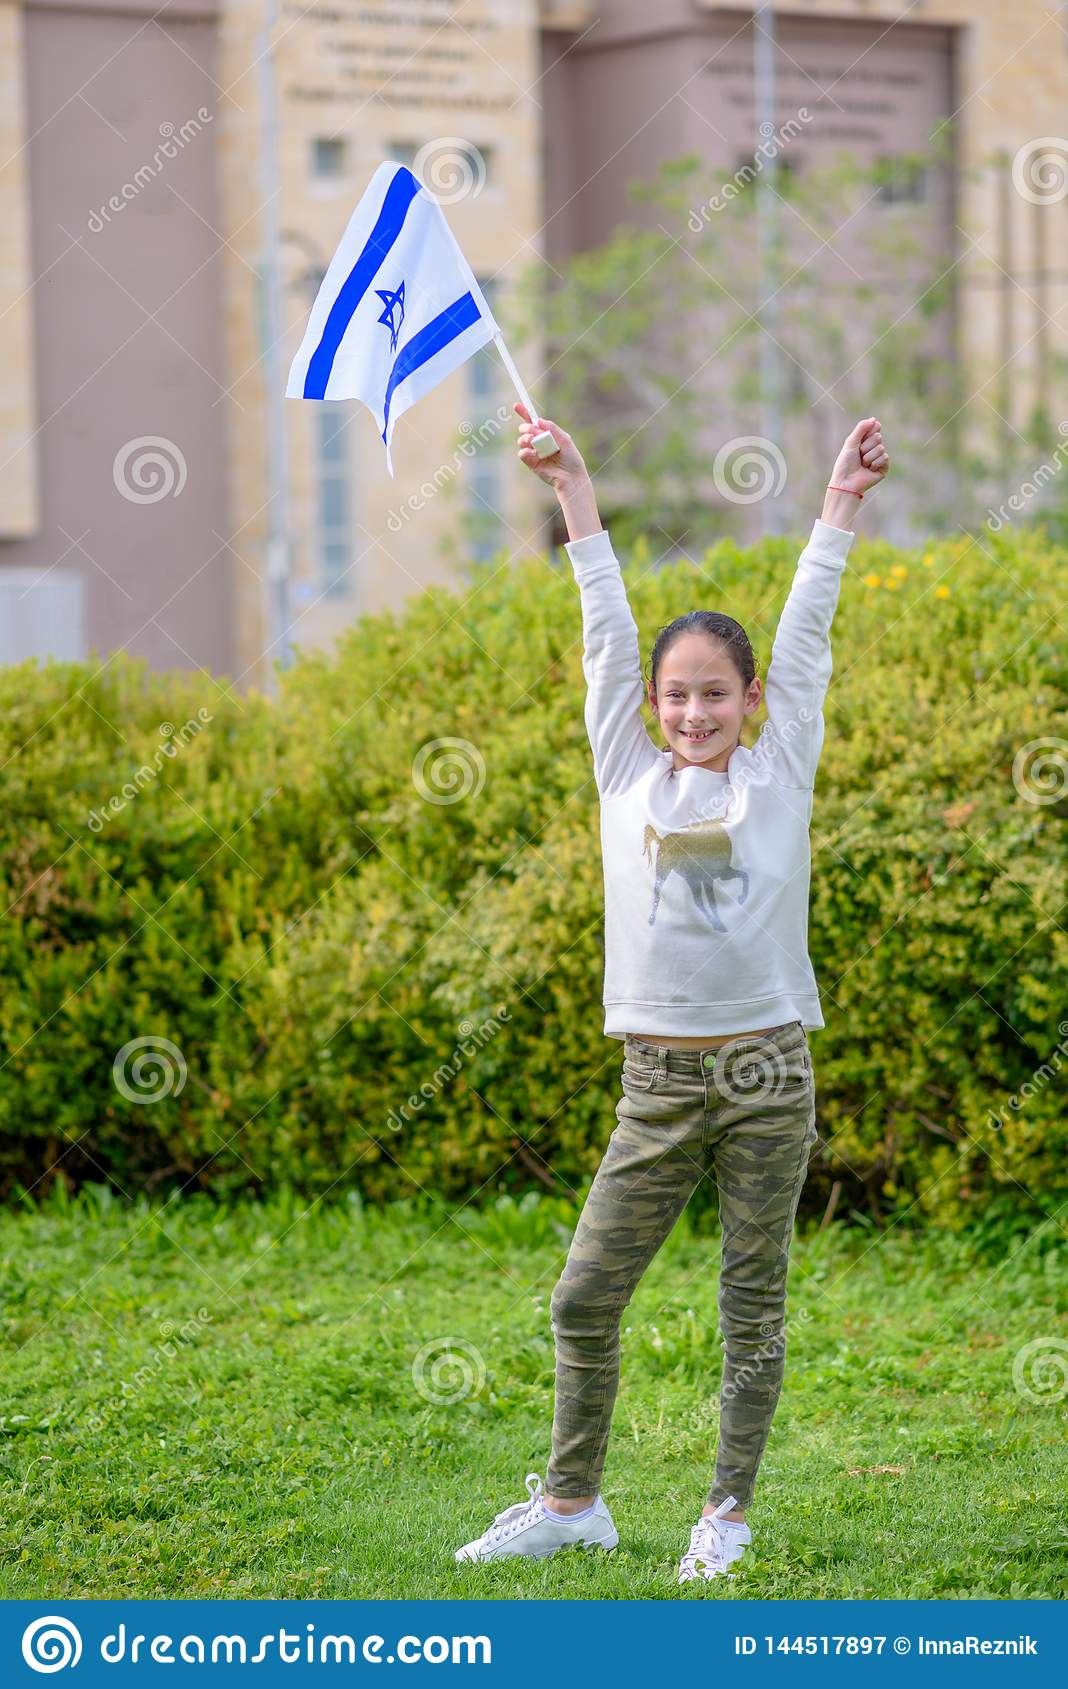 Happy Girl with Israel flag.